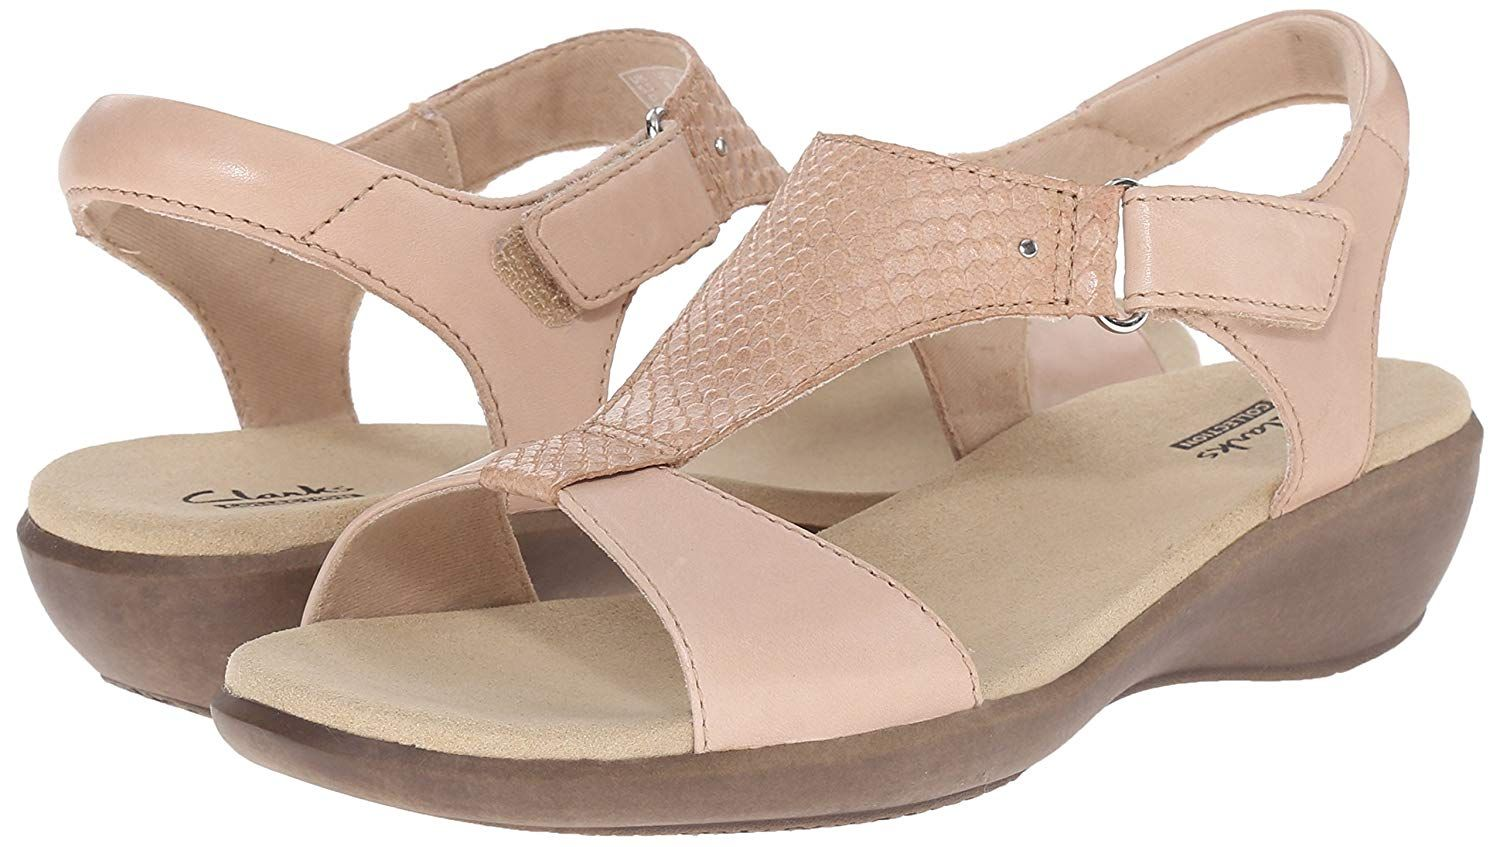 f4b3a33dca3e Clarks Women s Roza Pine Dress Sandal   Click on the image for additional  details. (